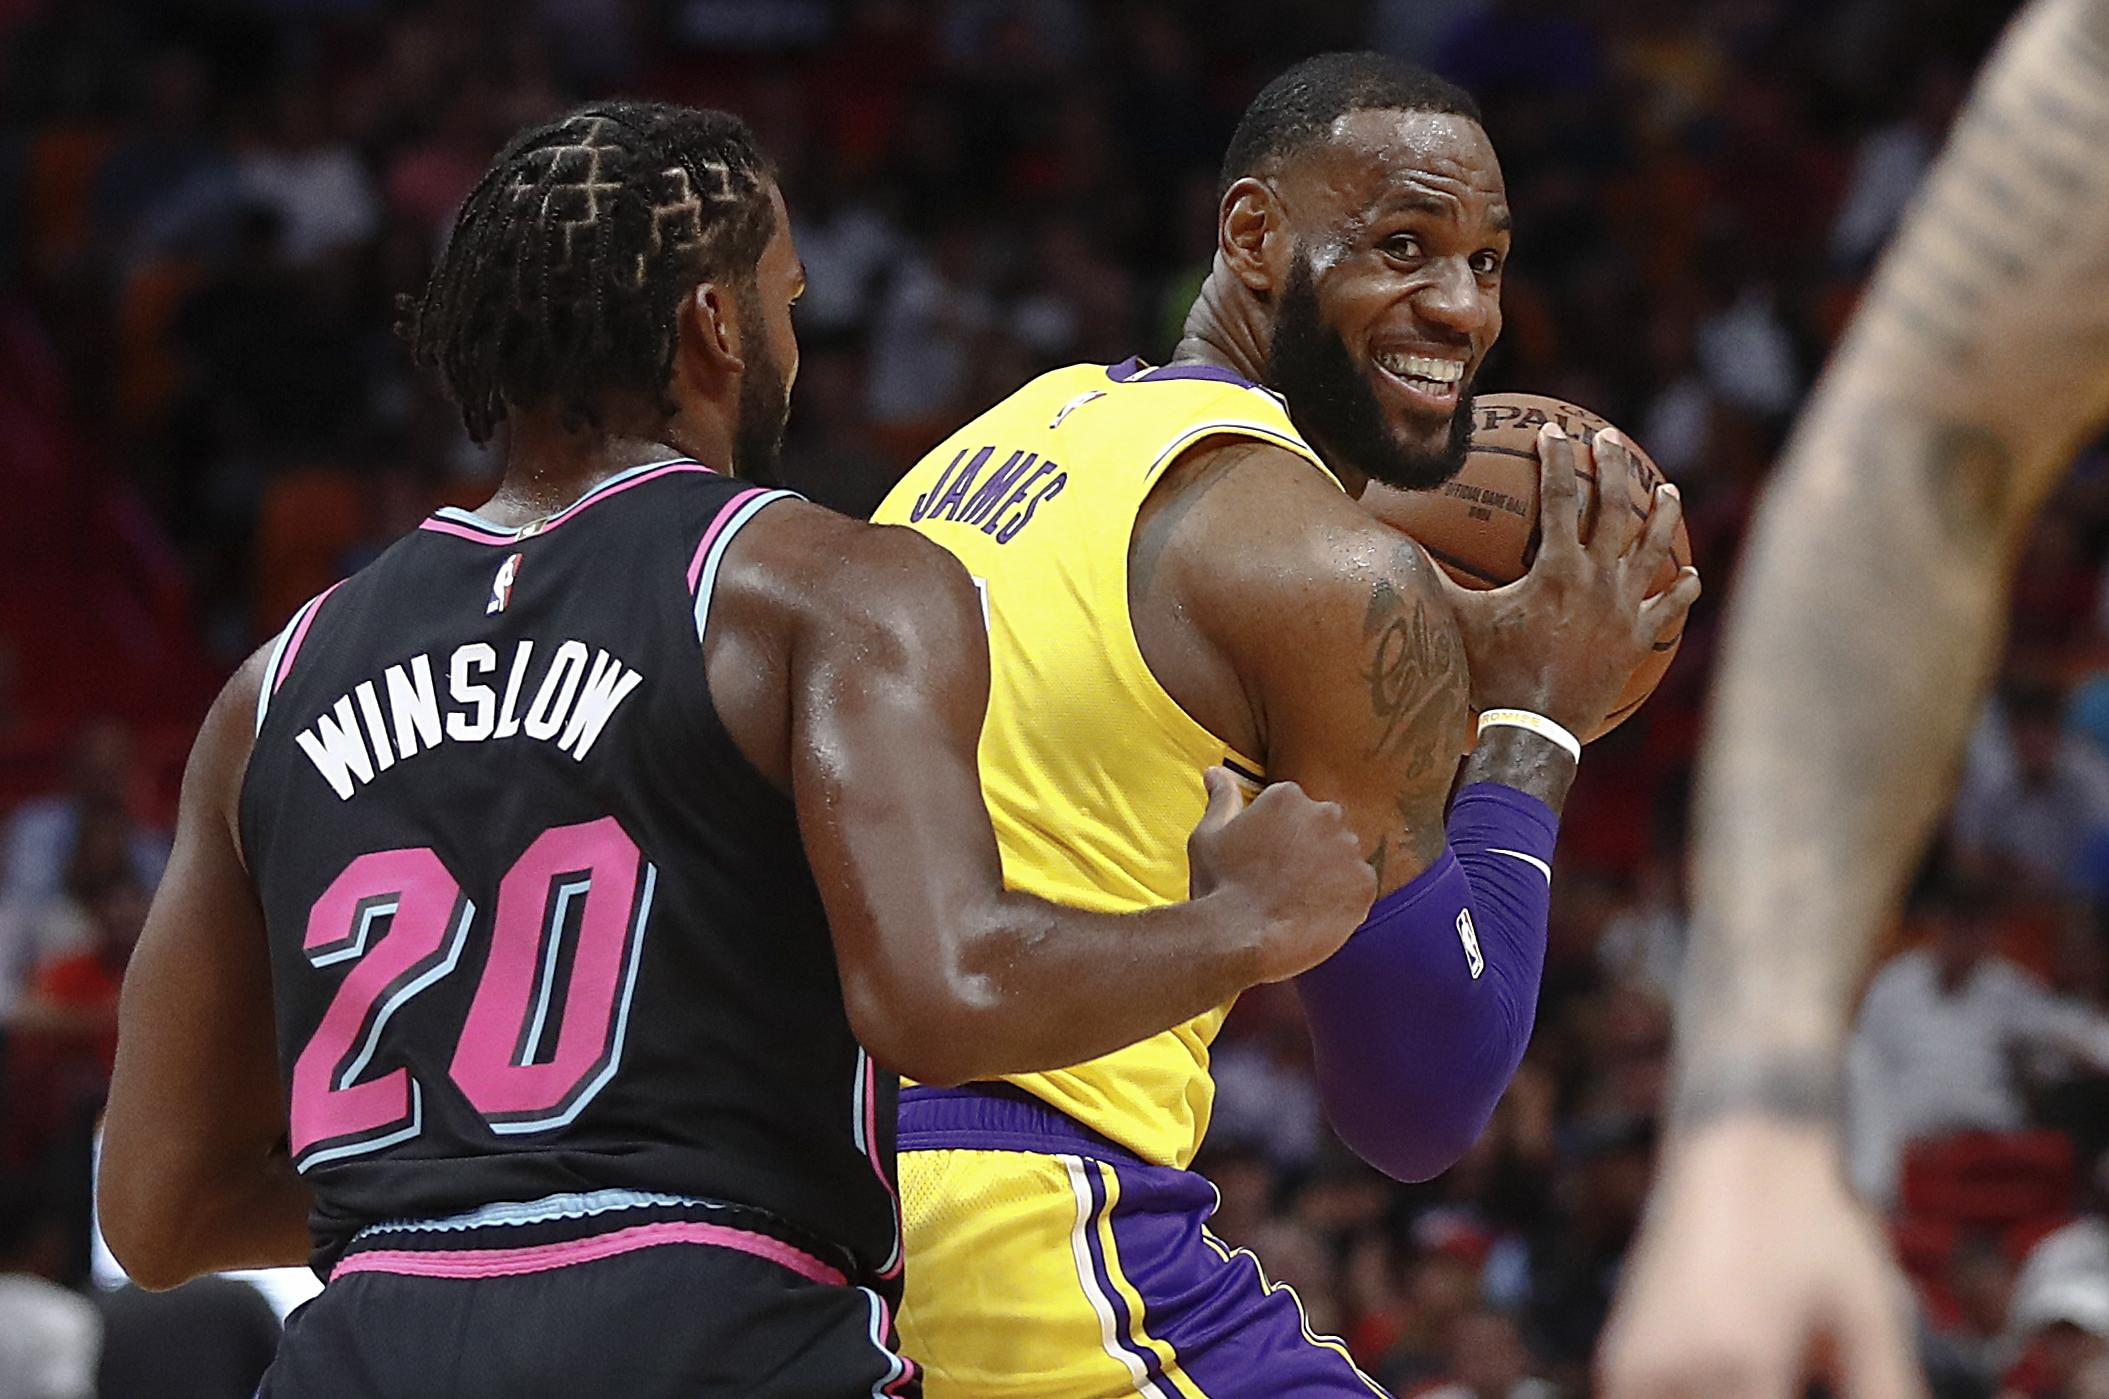 b91cd7d8d20 Los Angeles Lakers forward LeBron James keeps the ball from Miami Heat  forward Justise Winslow during